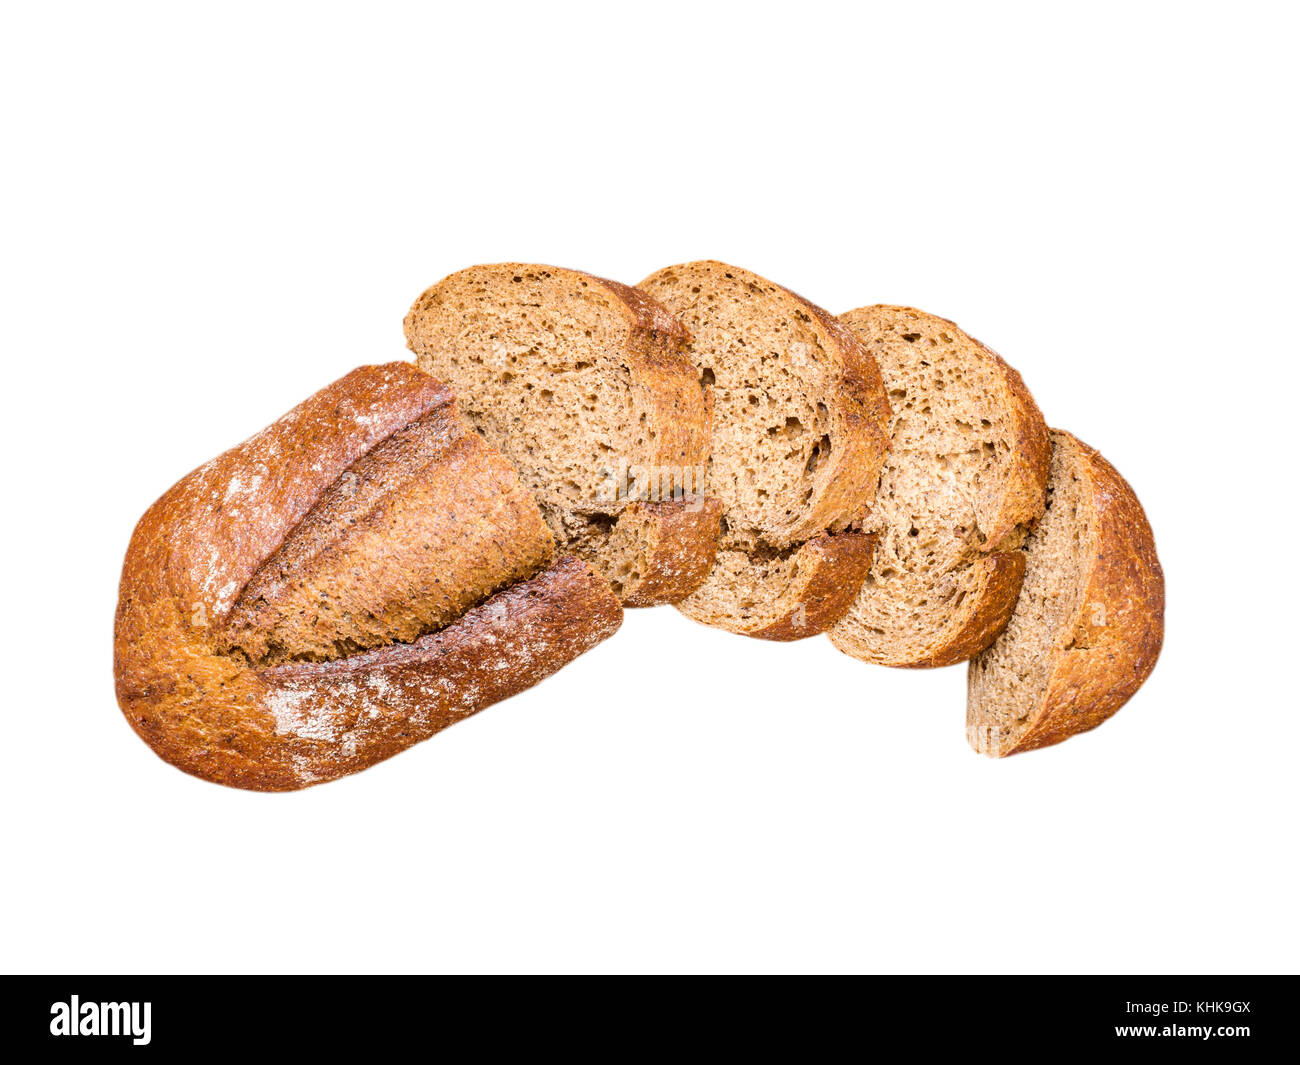 Whole-grain sliced bread. Whole wheat loaf top view. Artisan rustic bread isolated on white. - Stock Image